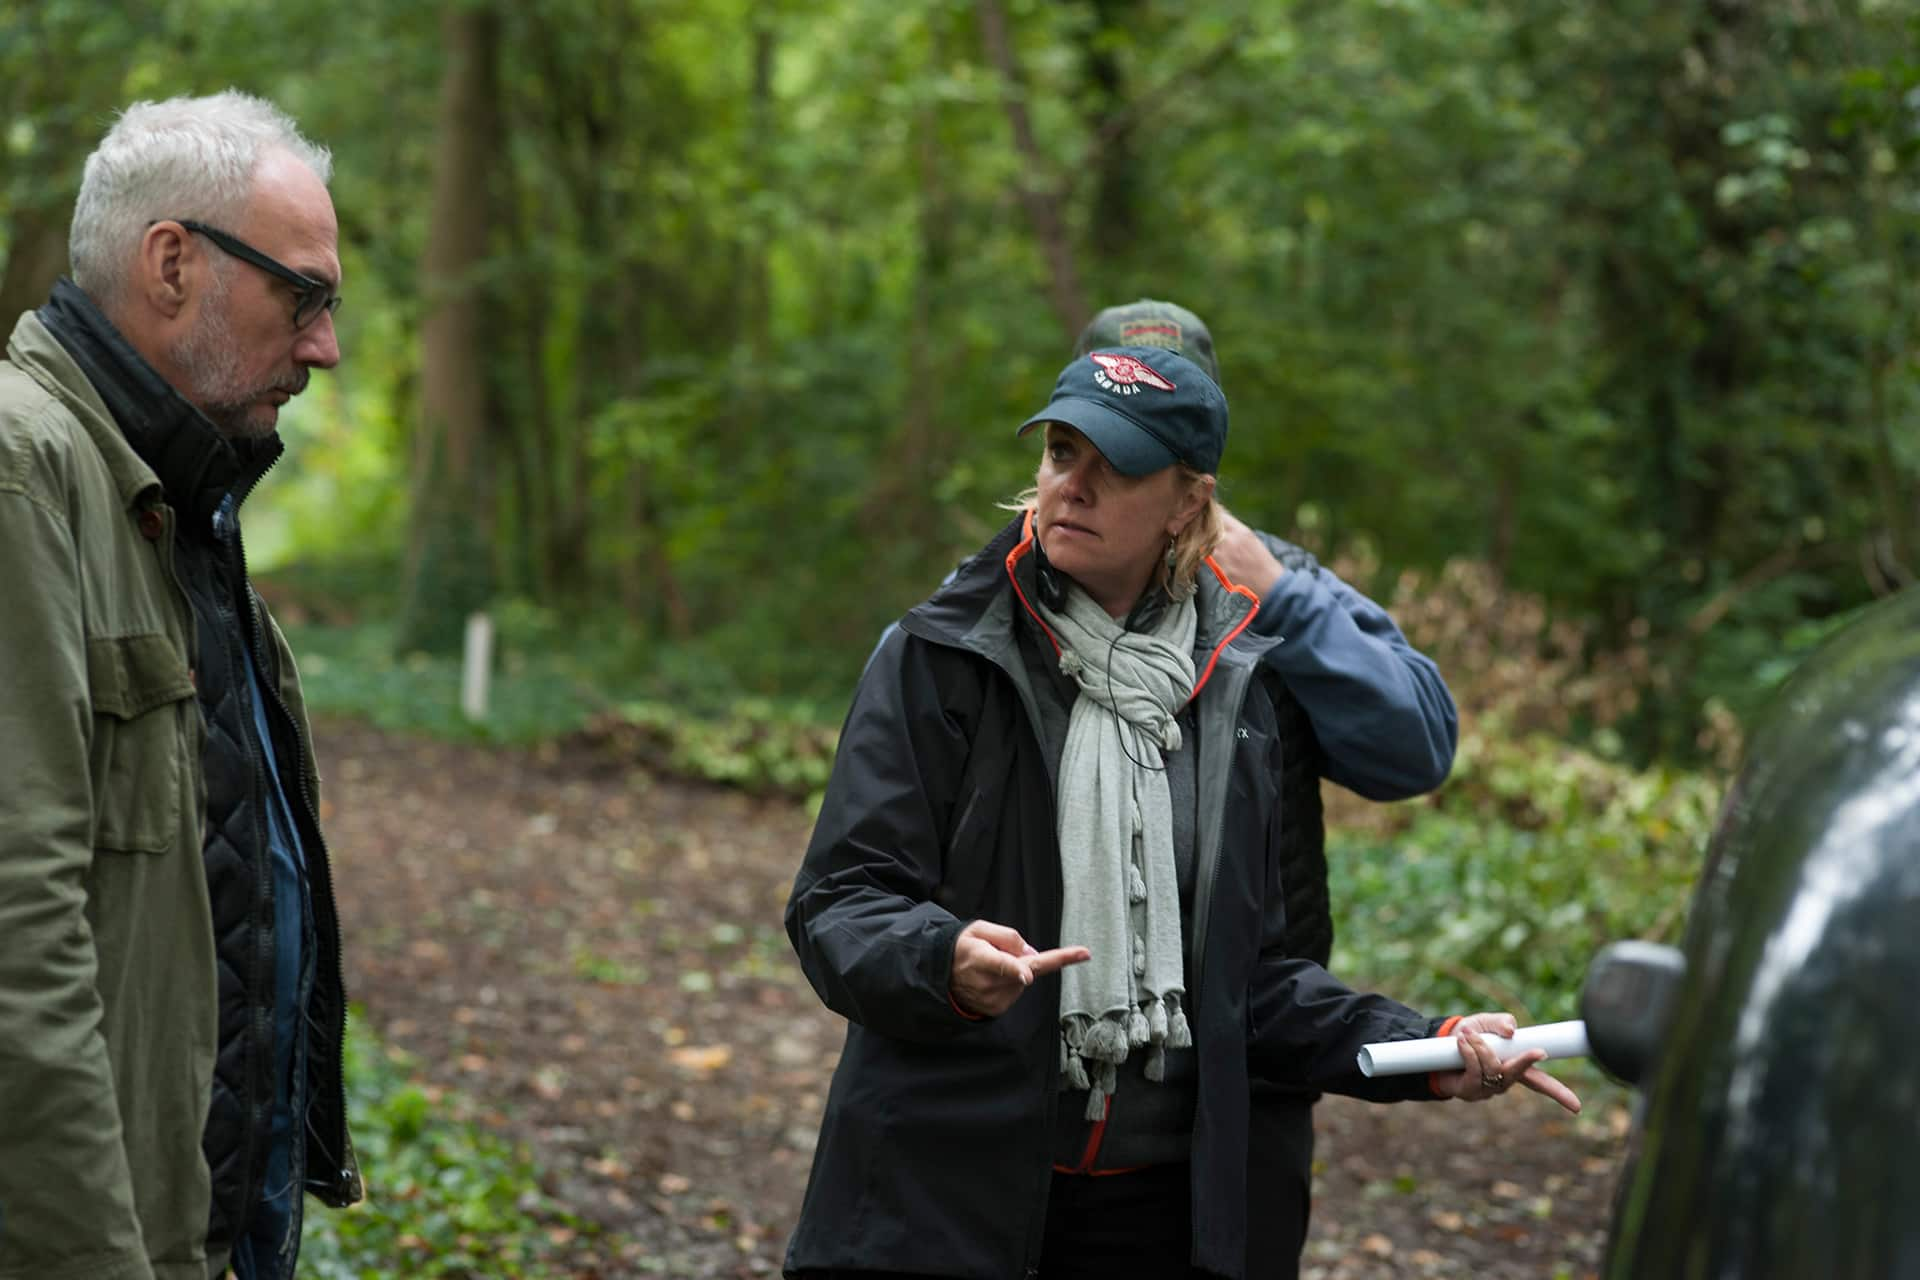 Behind the scenes on the set of X Company Season 3 with Director of Photography Michael Marshall and Director Amanda Tapping.